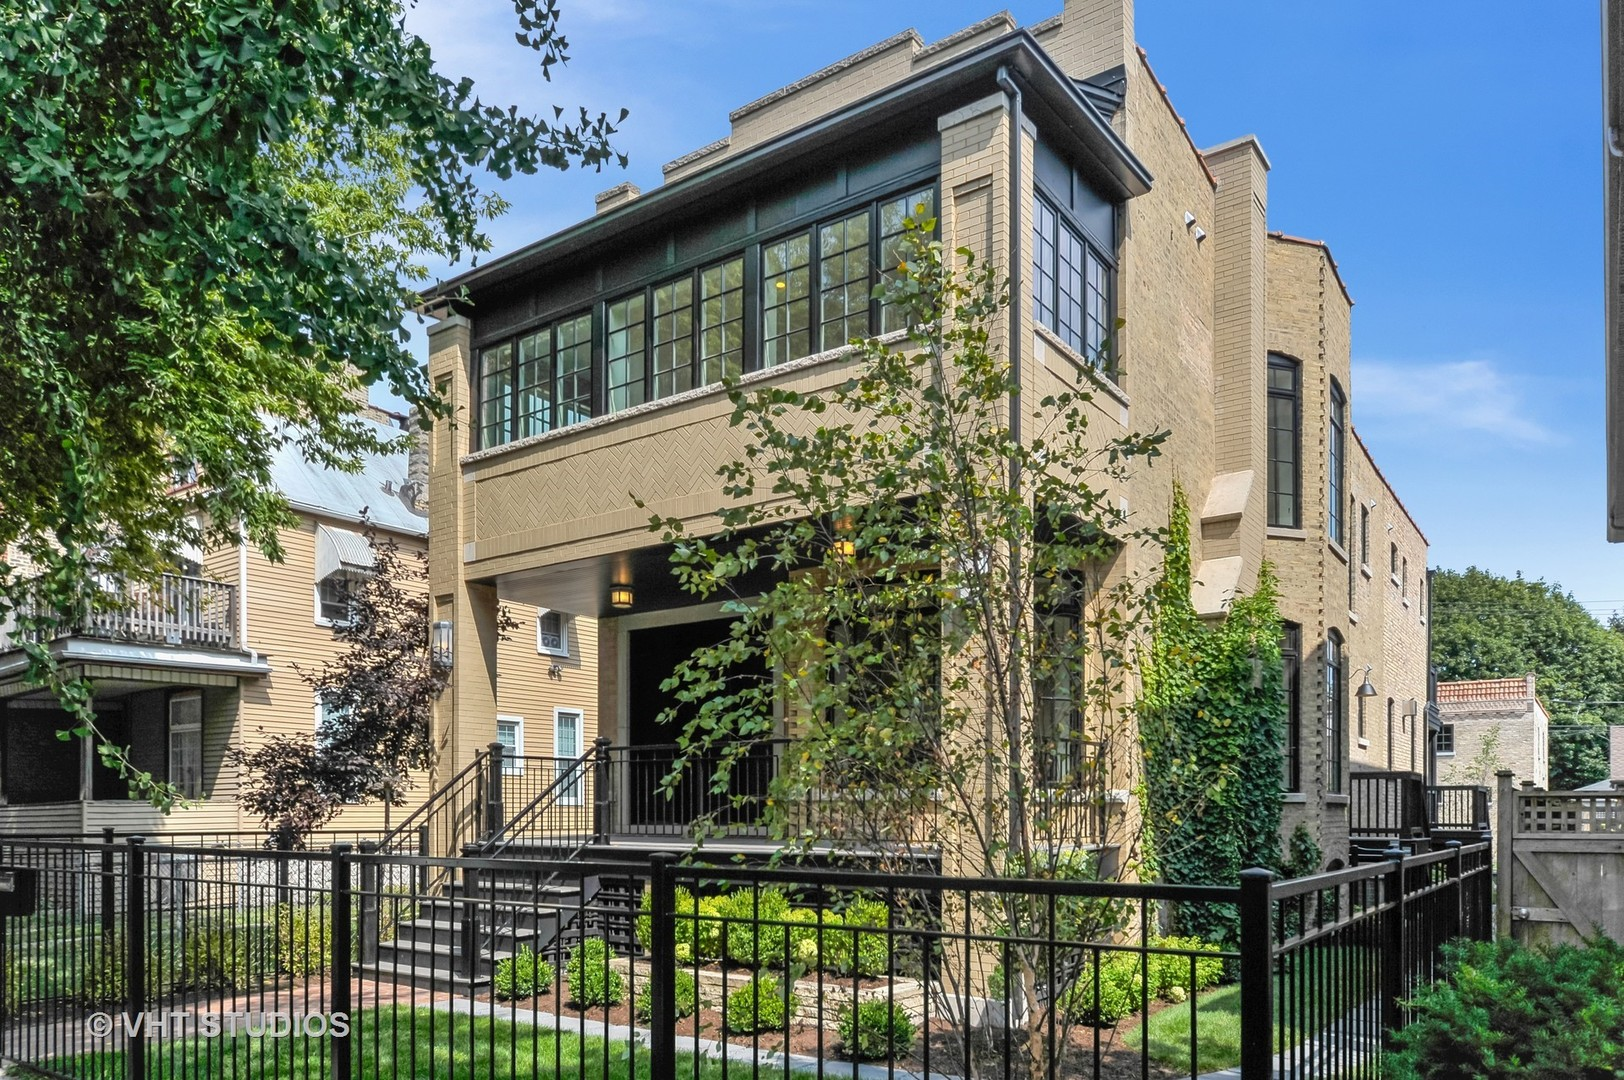 4 House in Lincoln Square